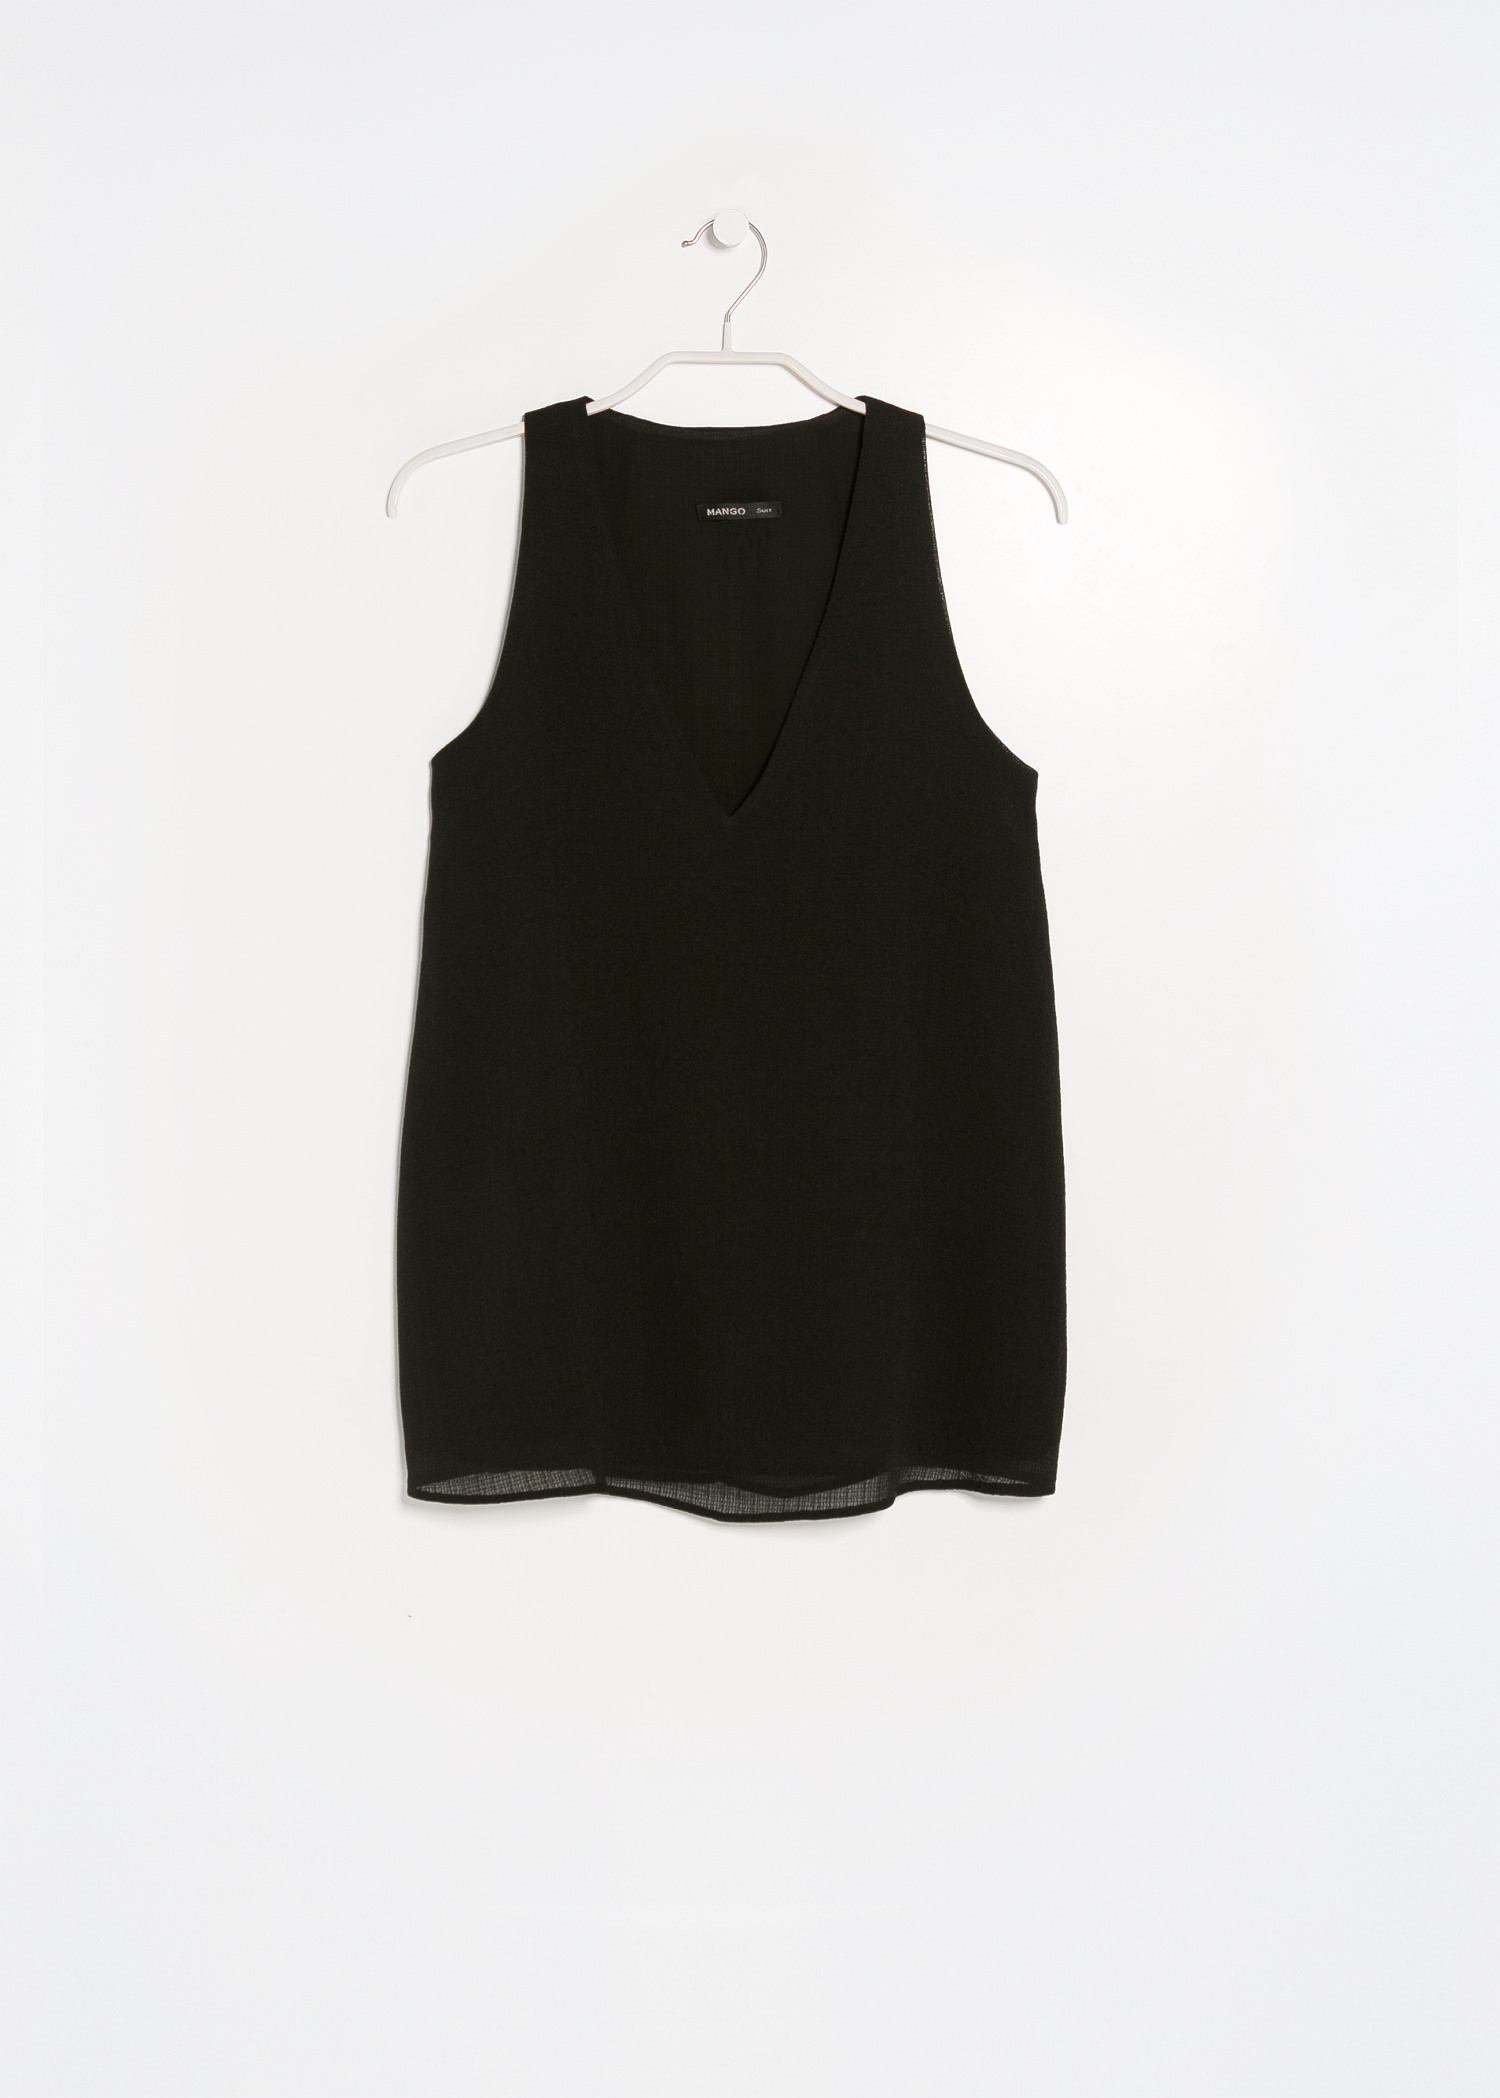 Textured v-neck top - Blouses and shirts for Women | MANGO